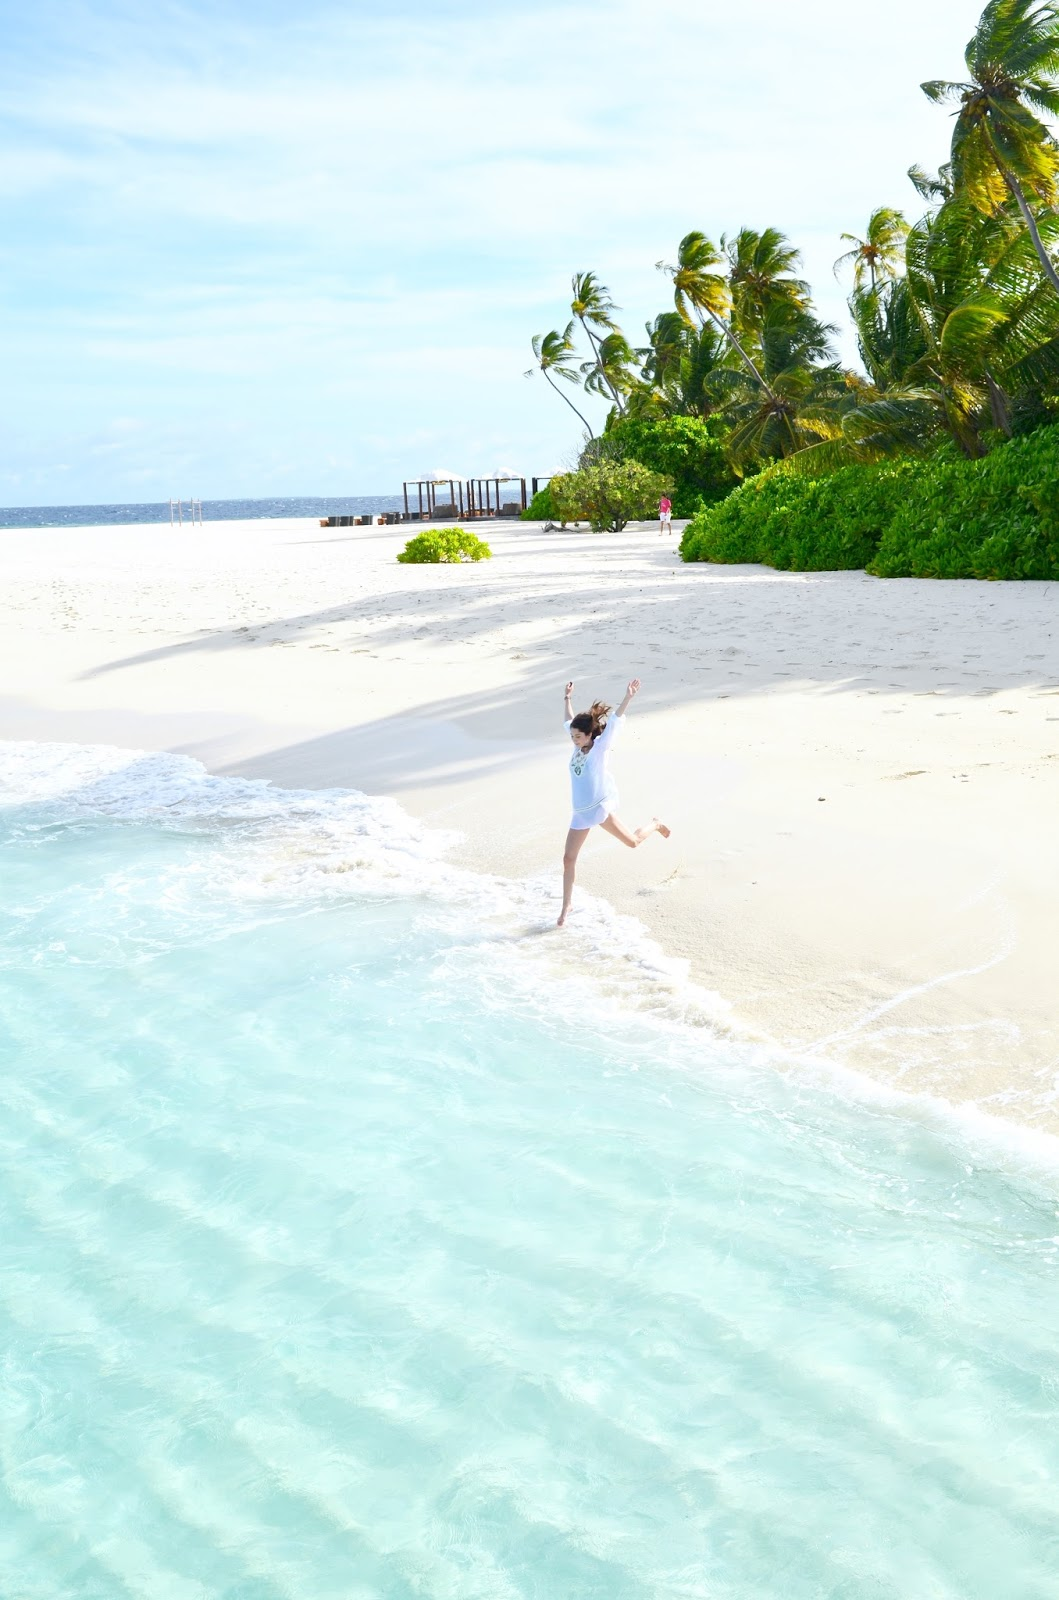 park hyatt maldives hadahaa review photos hyatt gold platinum diamond member free nights